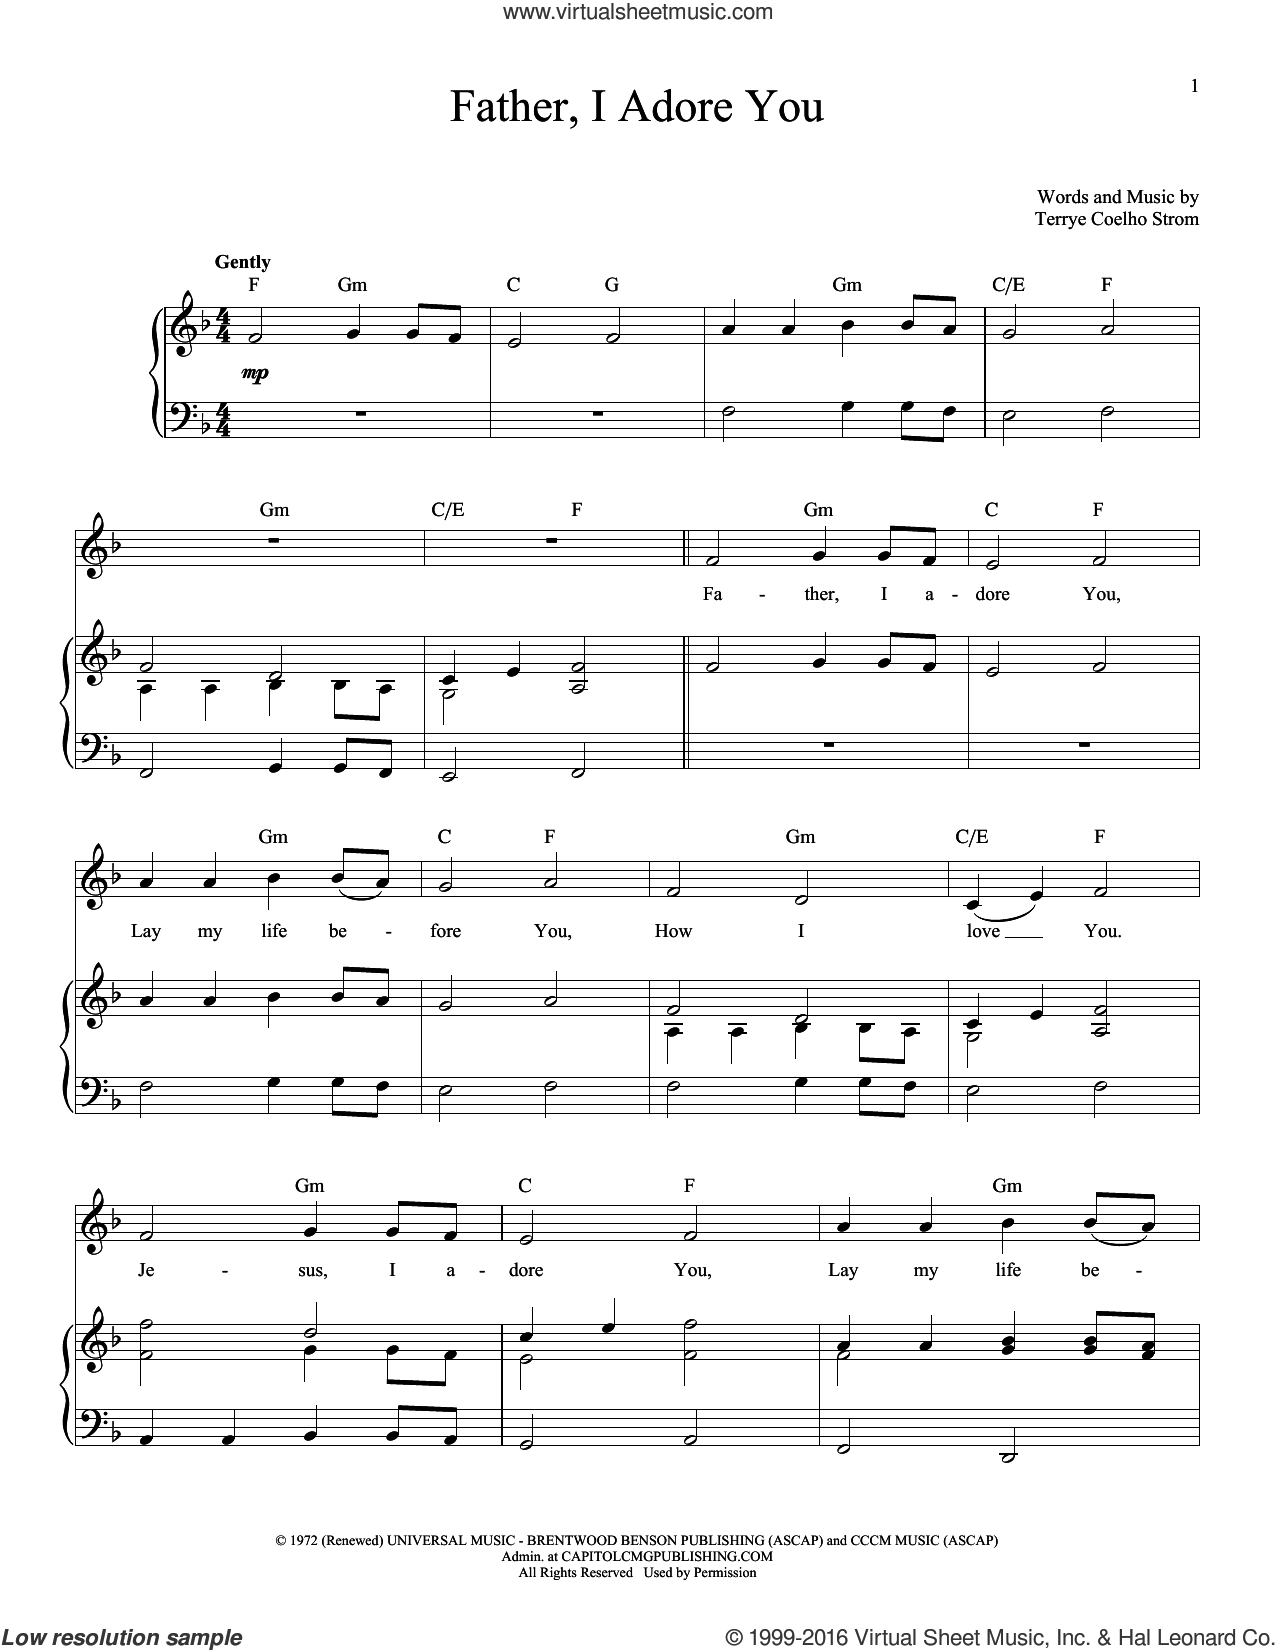 Father I Adore You sheet music for voice and piano by Terrye Coelho, intermediate skill level